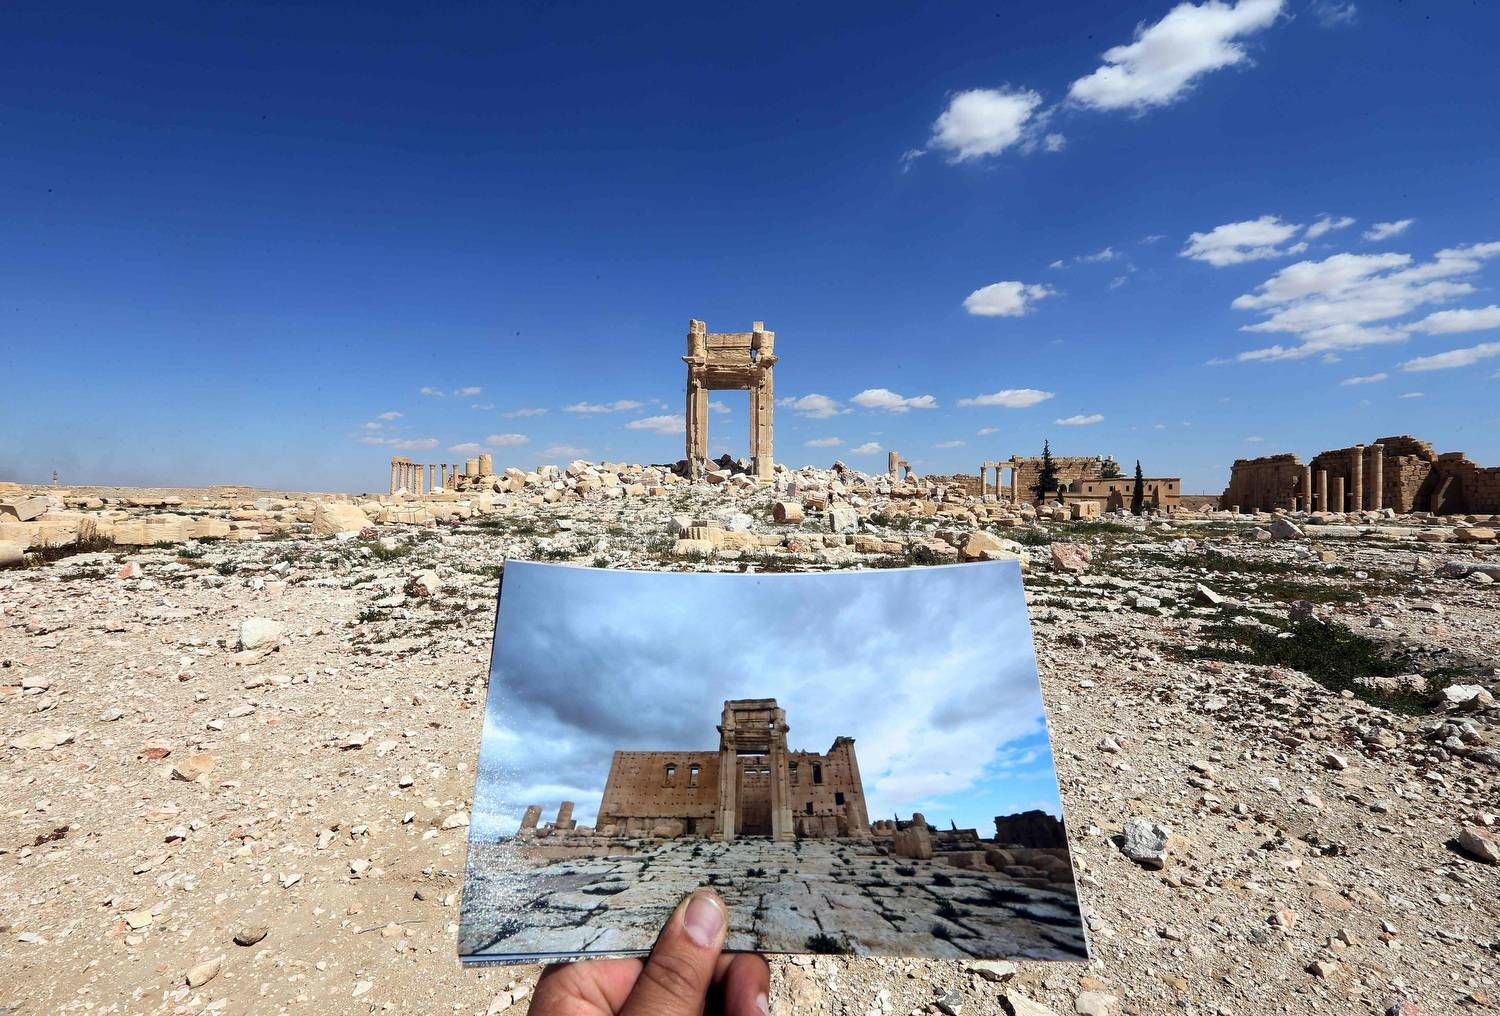 Ruins of the Temple of Bel in Palmyra